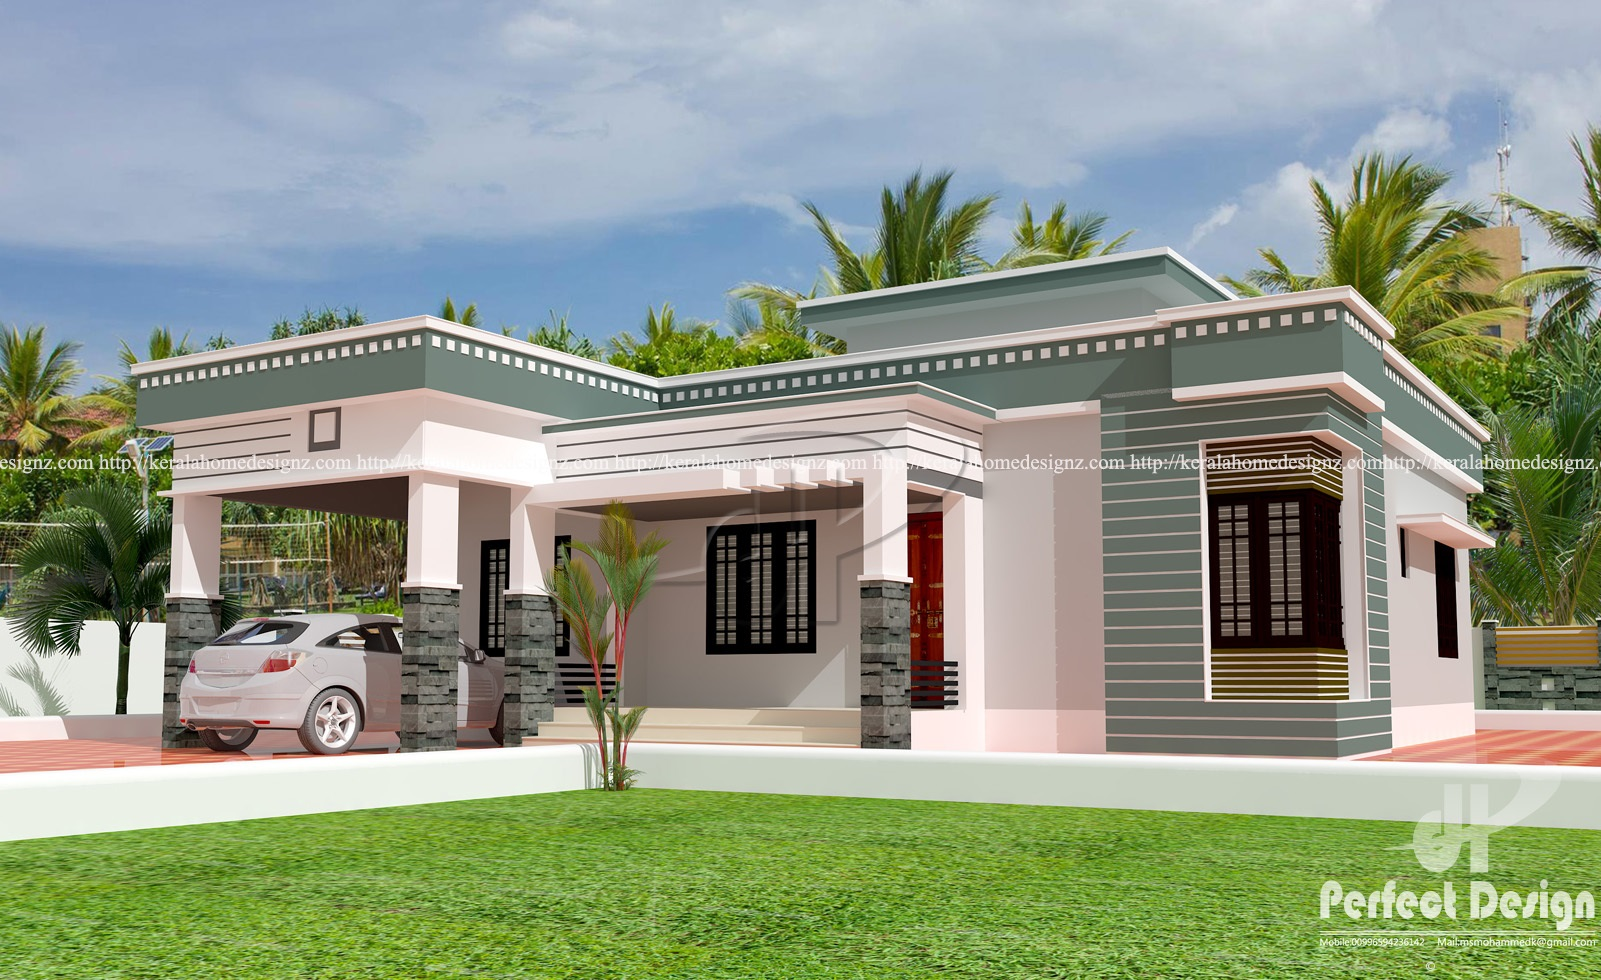 3 bed room modern single floor home kerala home design for Modern single floor house designs